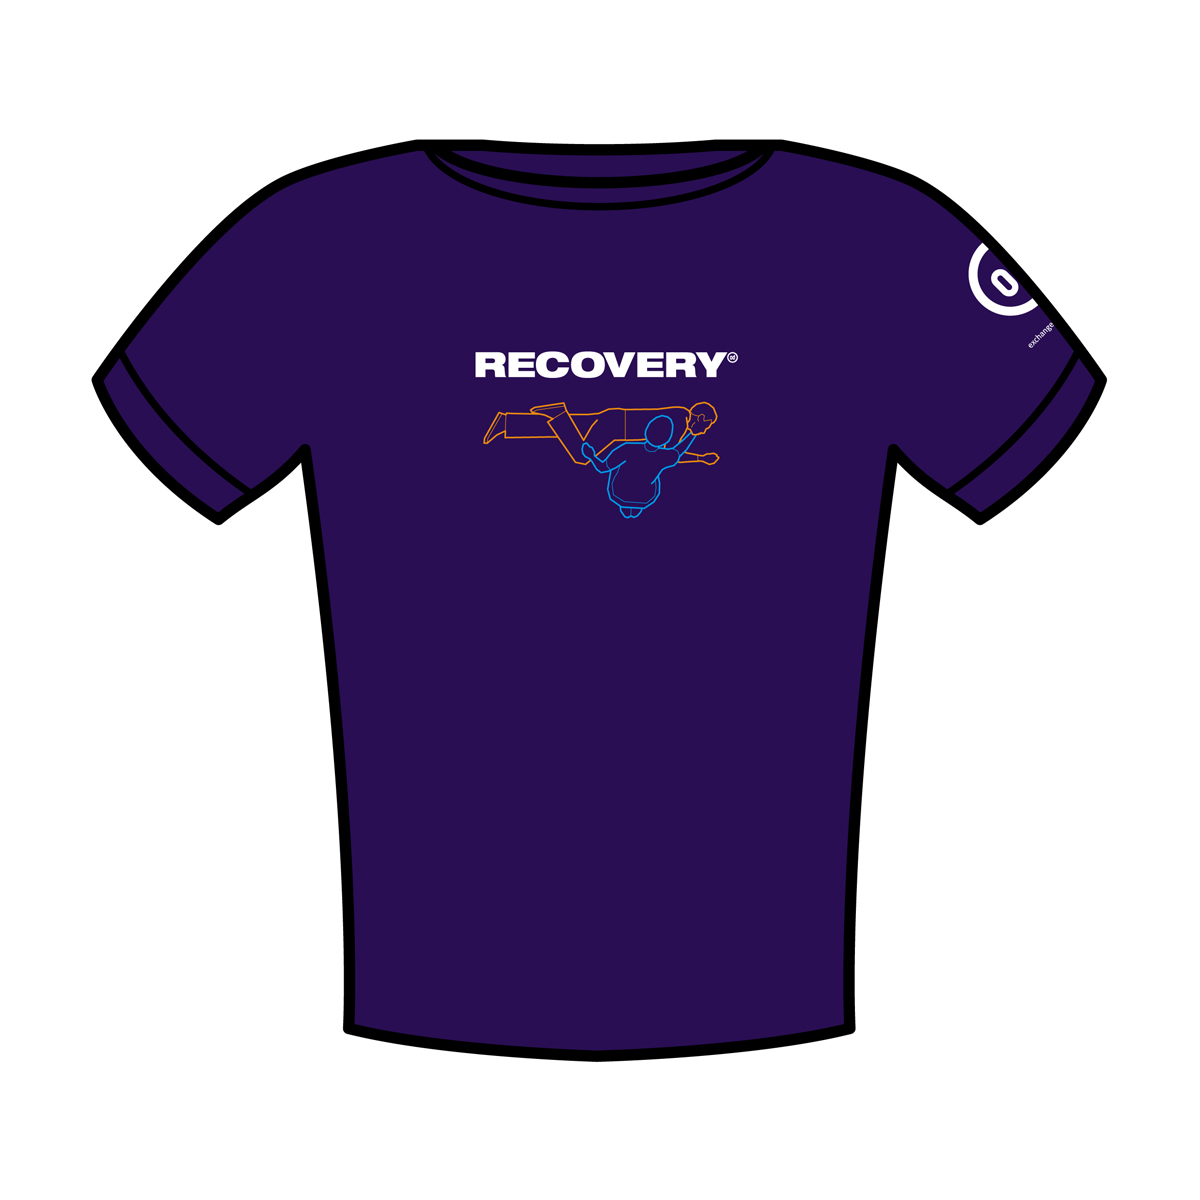 Recovery T-shirt (small)